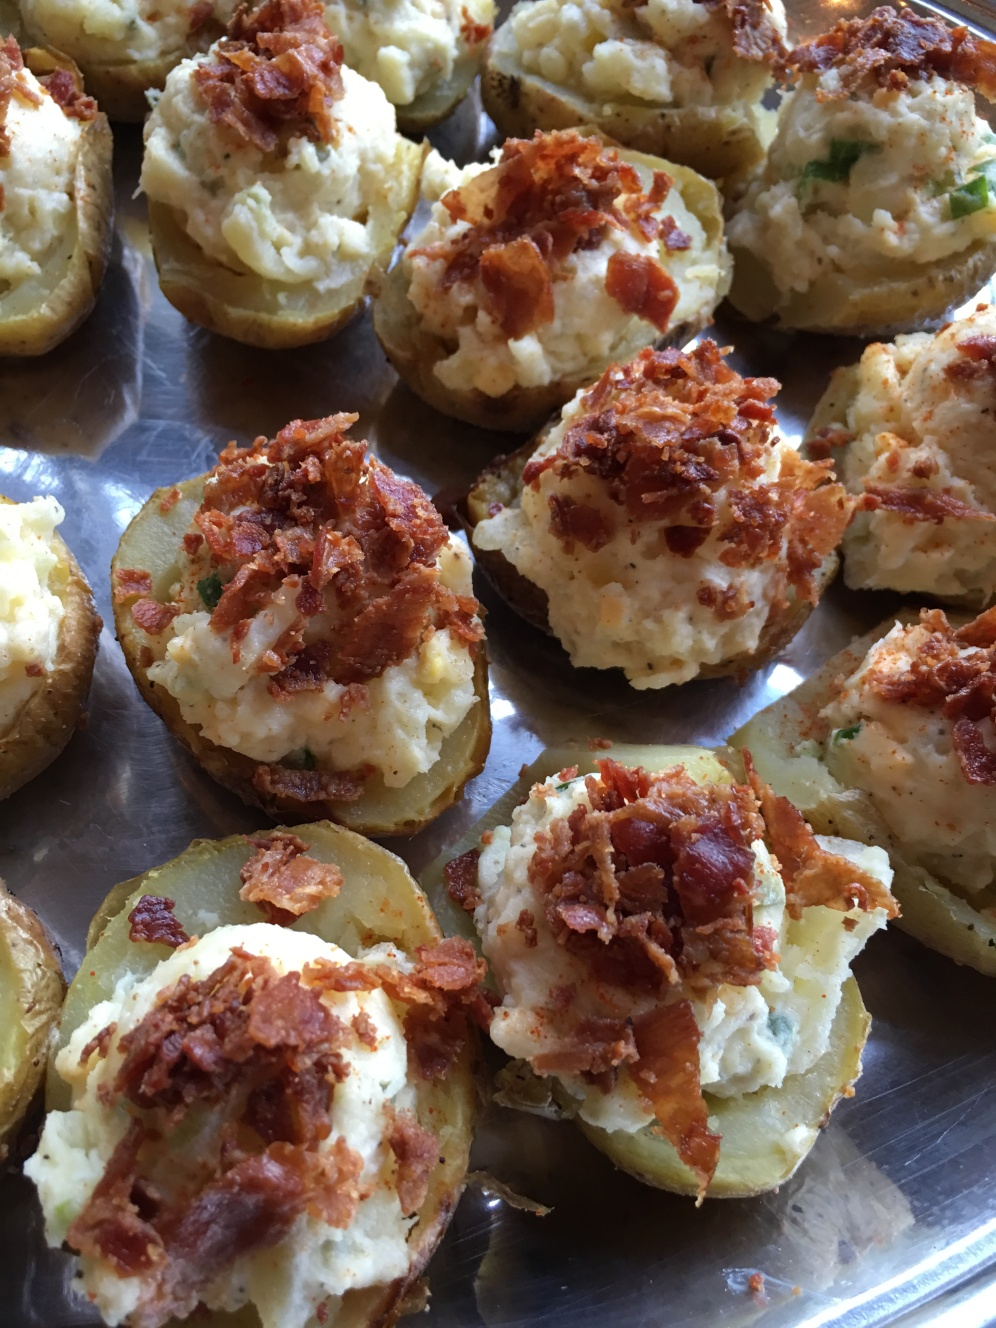 Petit Potato Salads with Whiskey Bacon Crumble